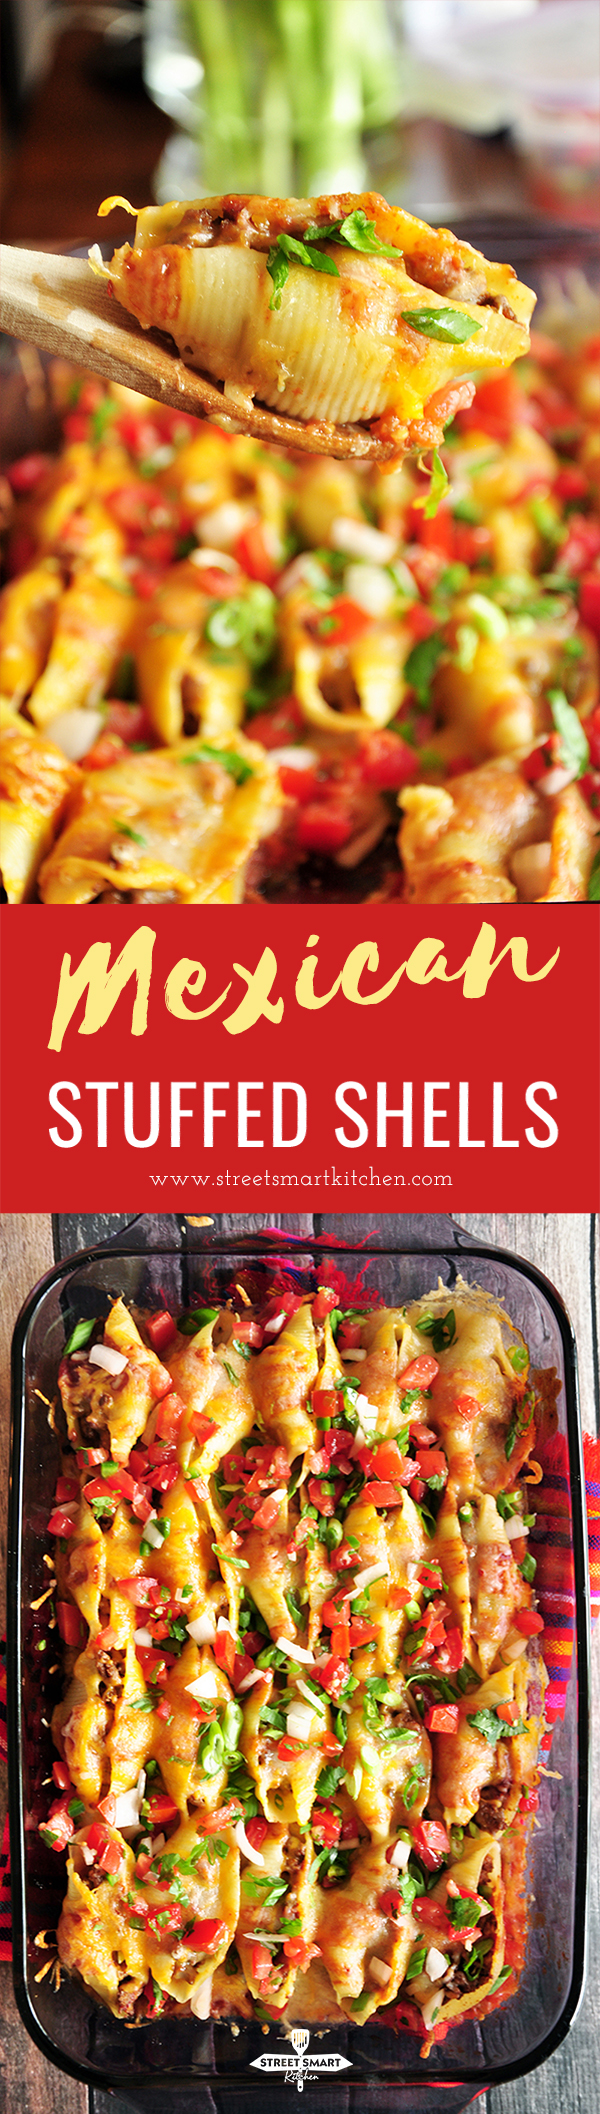 These Mexican stuffed shells are a fun twist on your traditional Mexican meal: full of spice, packed with flavor, and guaranteed to be a crowd pleaser.